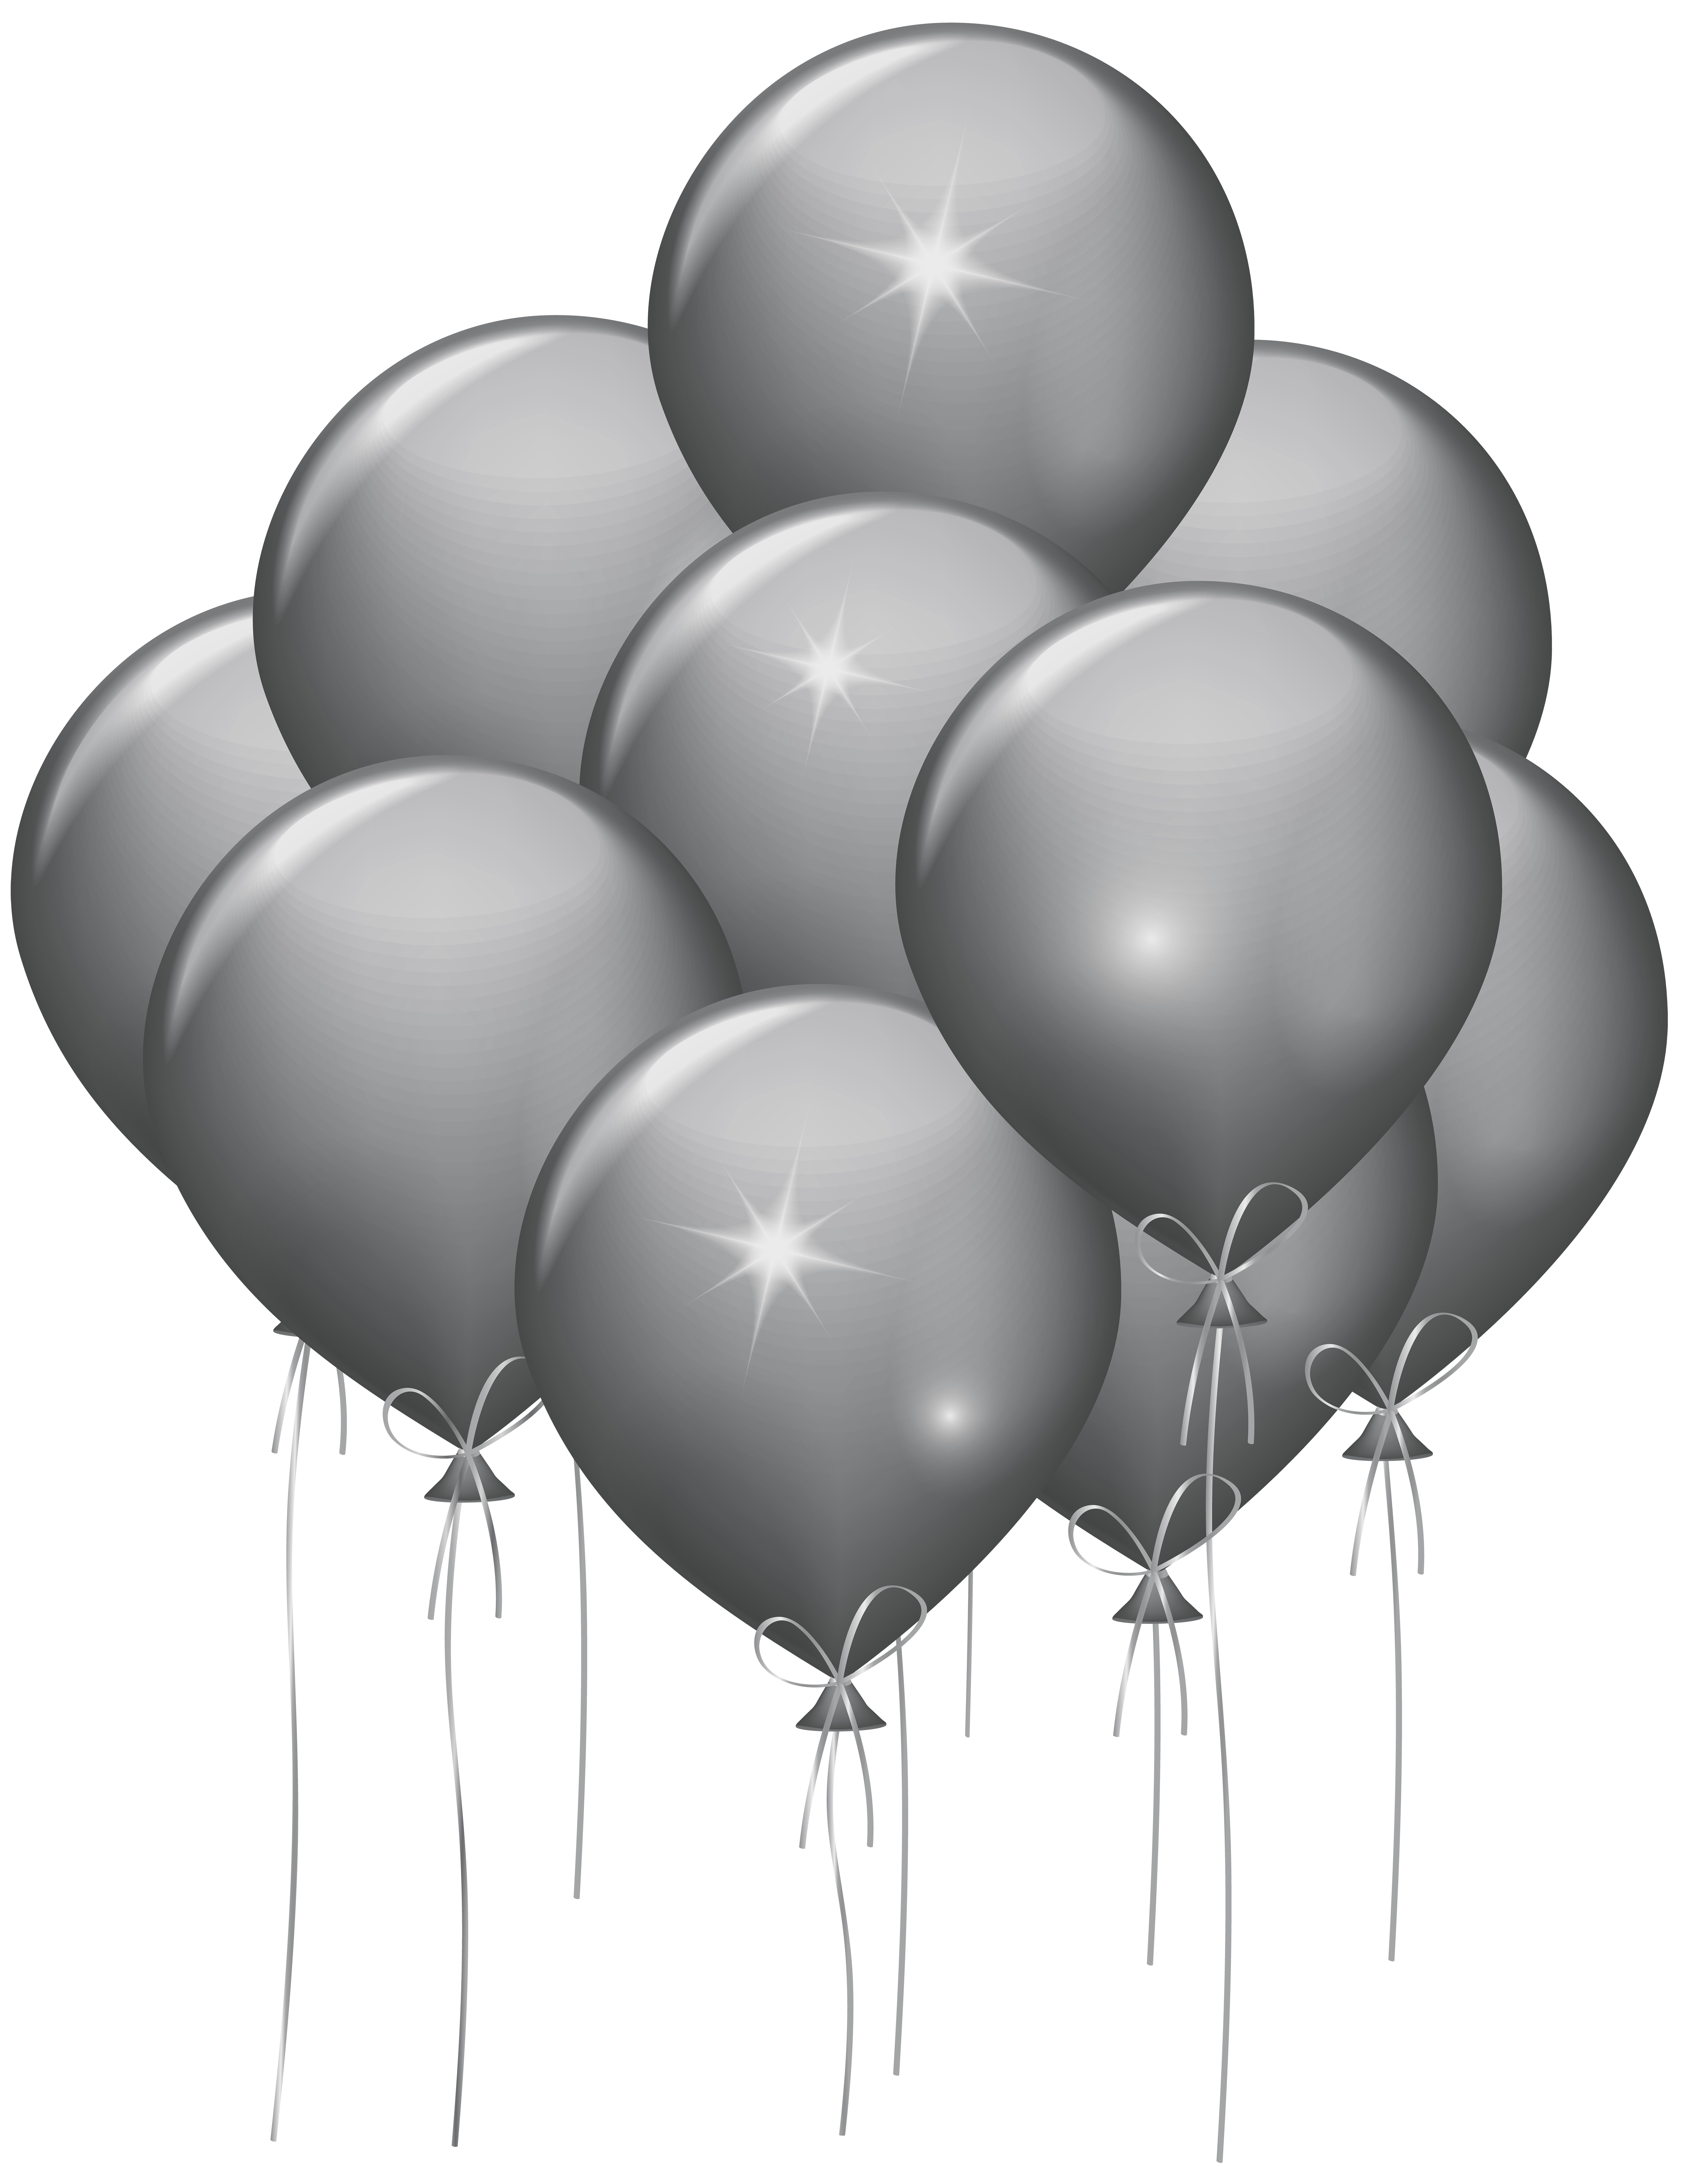 White balloons png. Silver transparent clip art